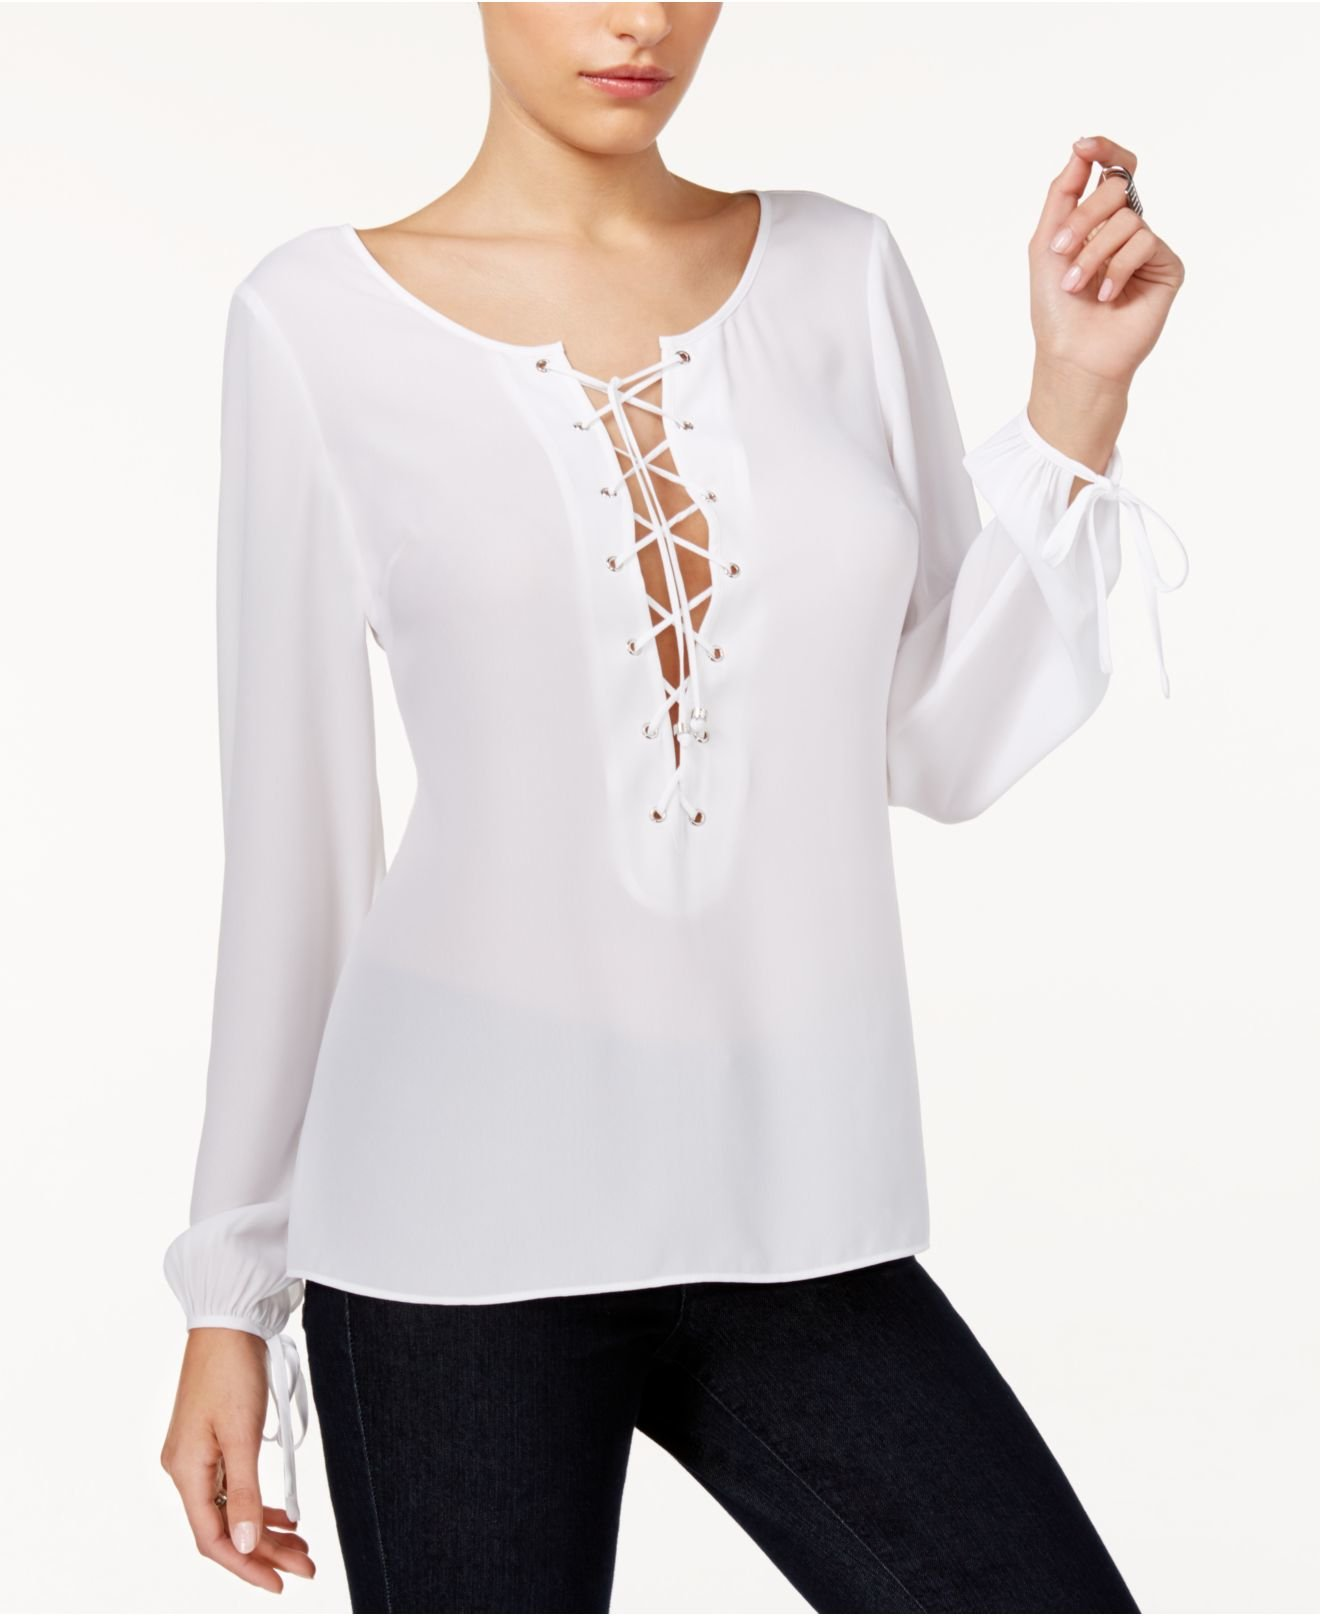 Guess White Lace Blouse 7